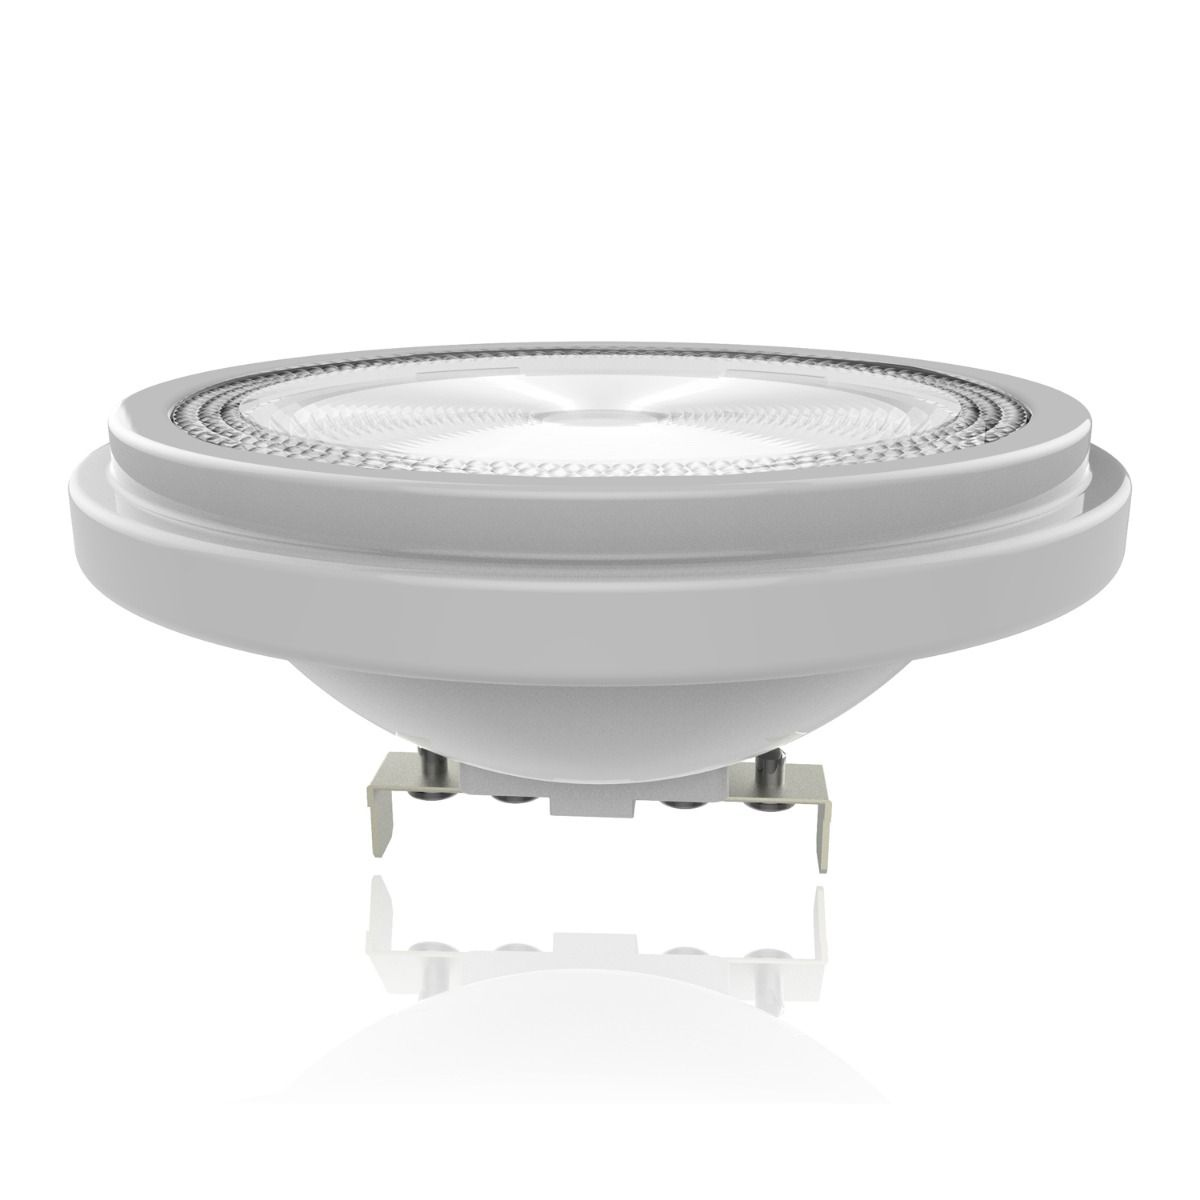 Noxion Lucent LED Spot AR111 G53 12V 11.5W 927 40D | Dimmable - Best Colour Rendering - Replaces 75W